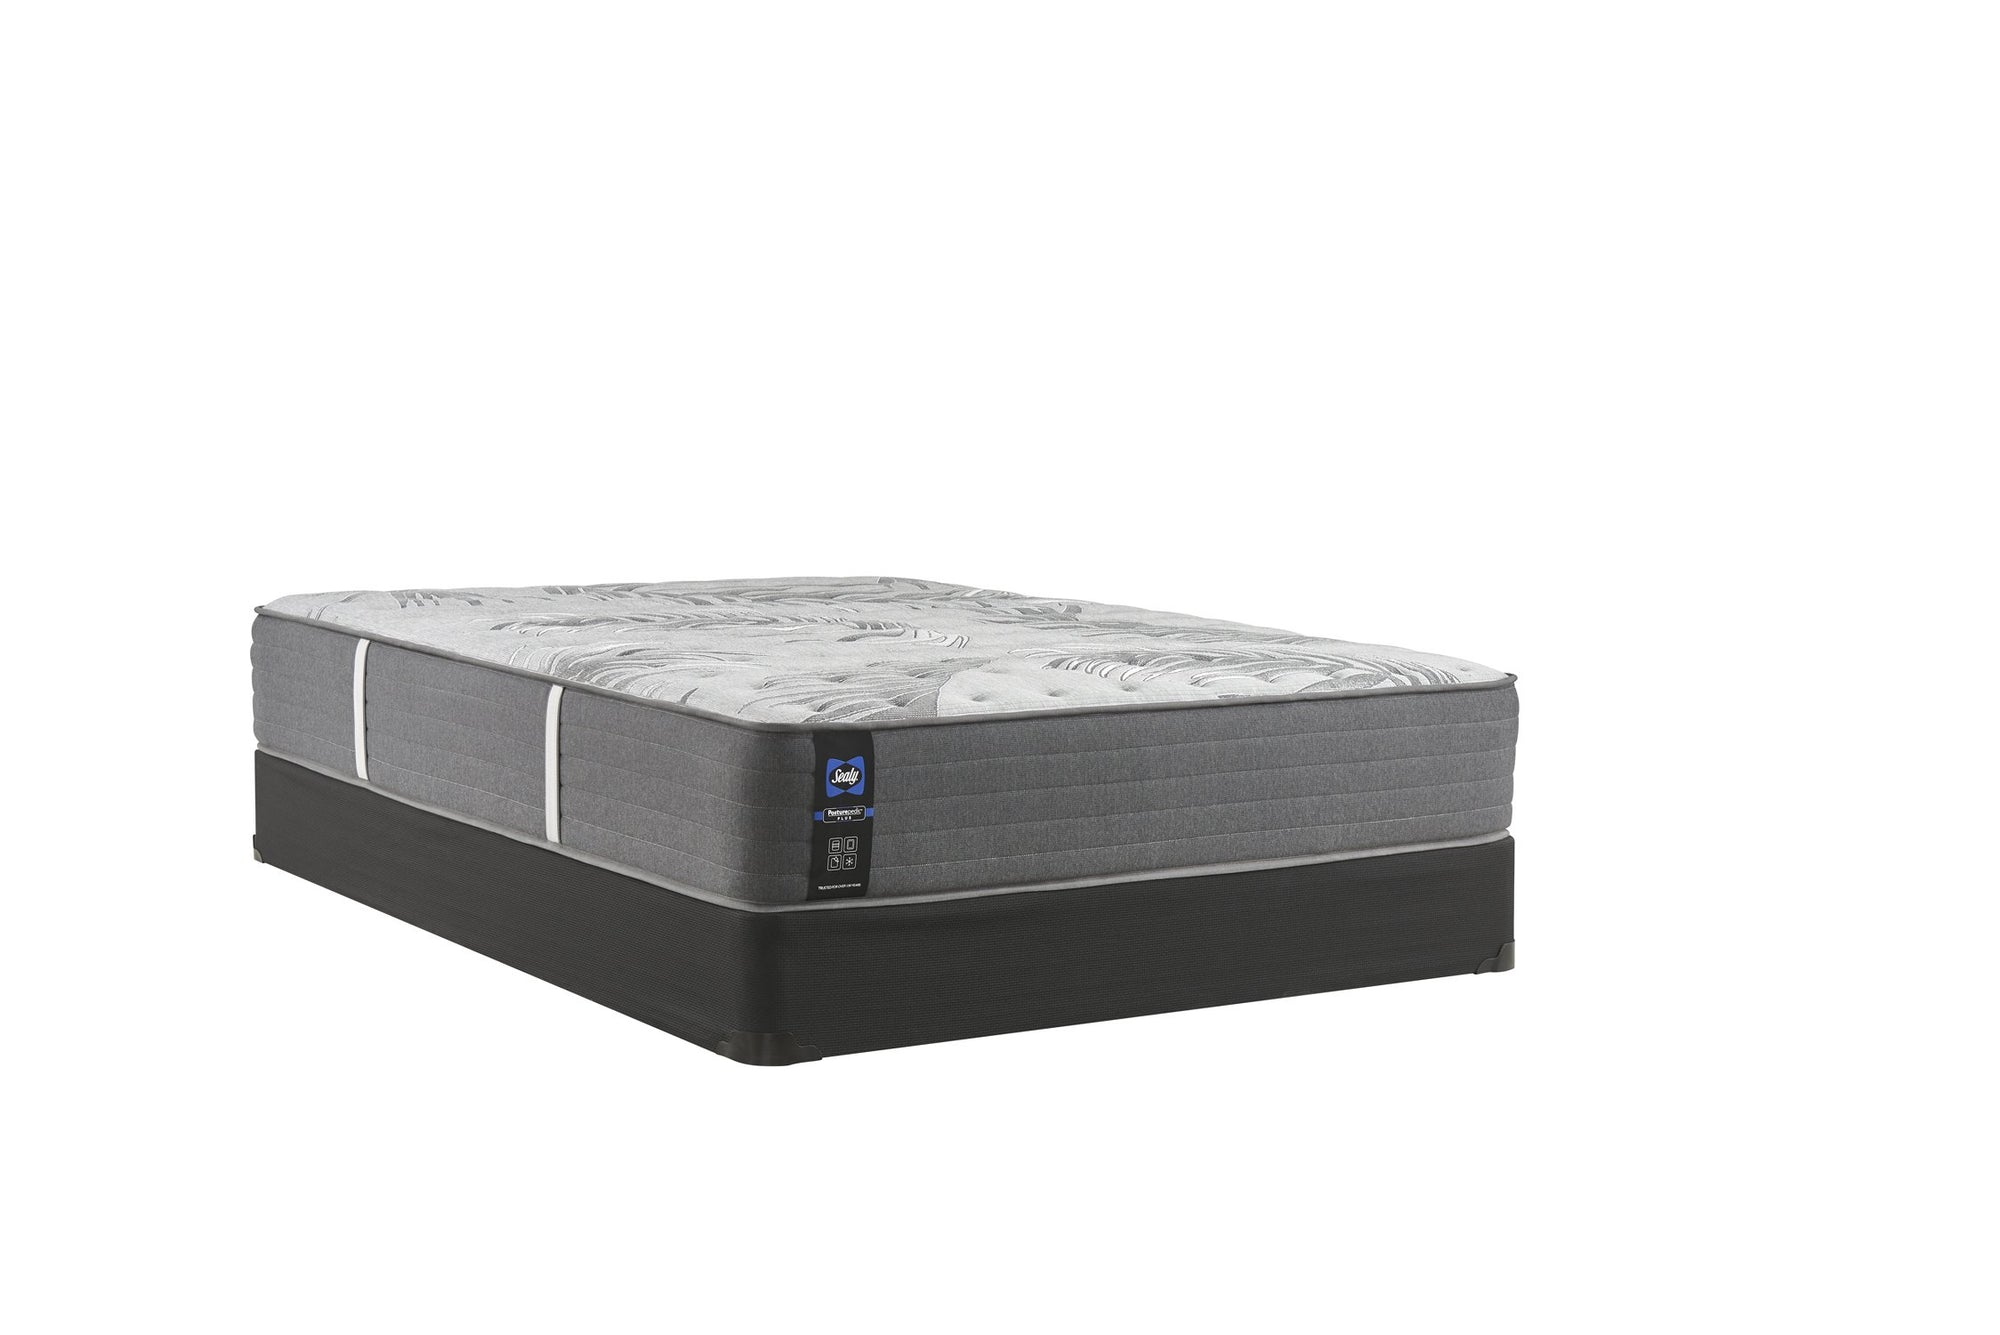 Sealy Posturepedic Plus Testimony II Plush Innerspring Mattress Mattress Sealy